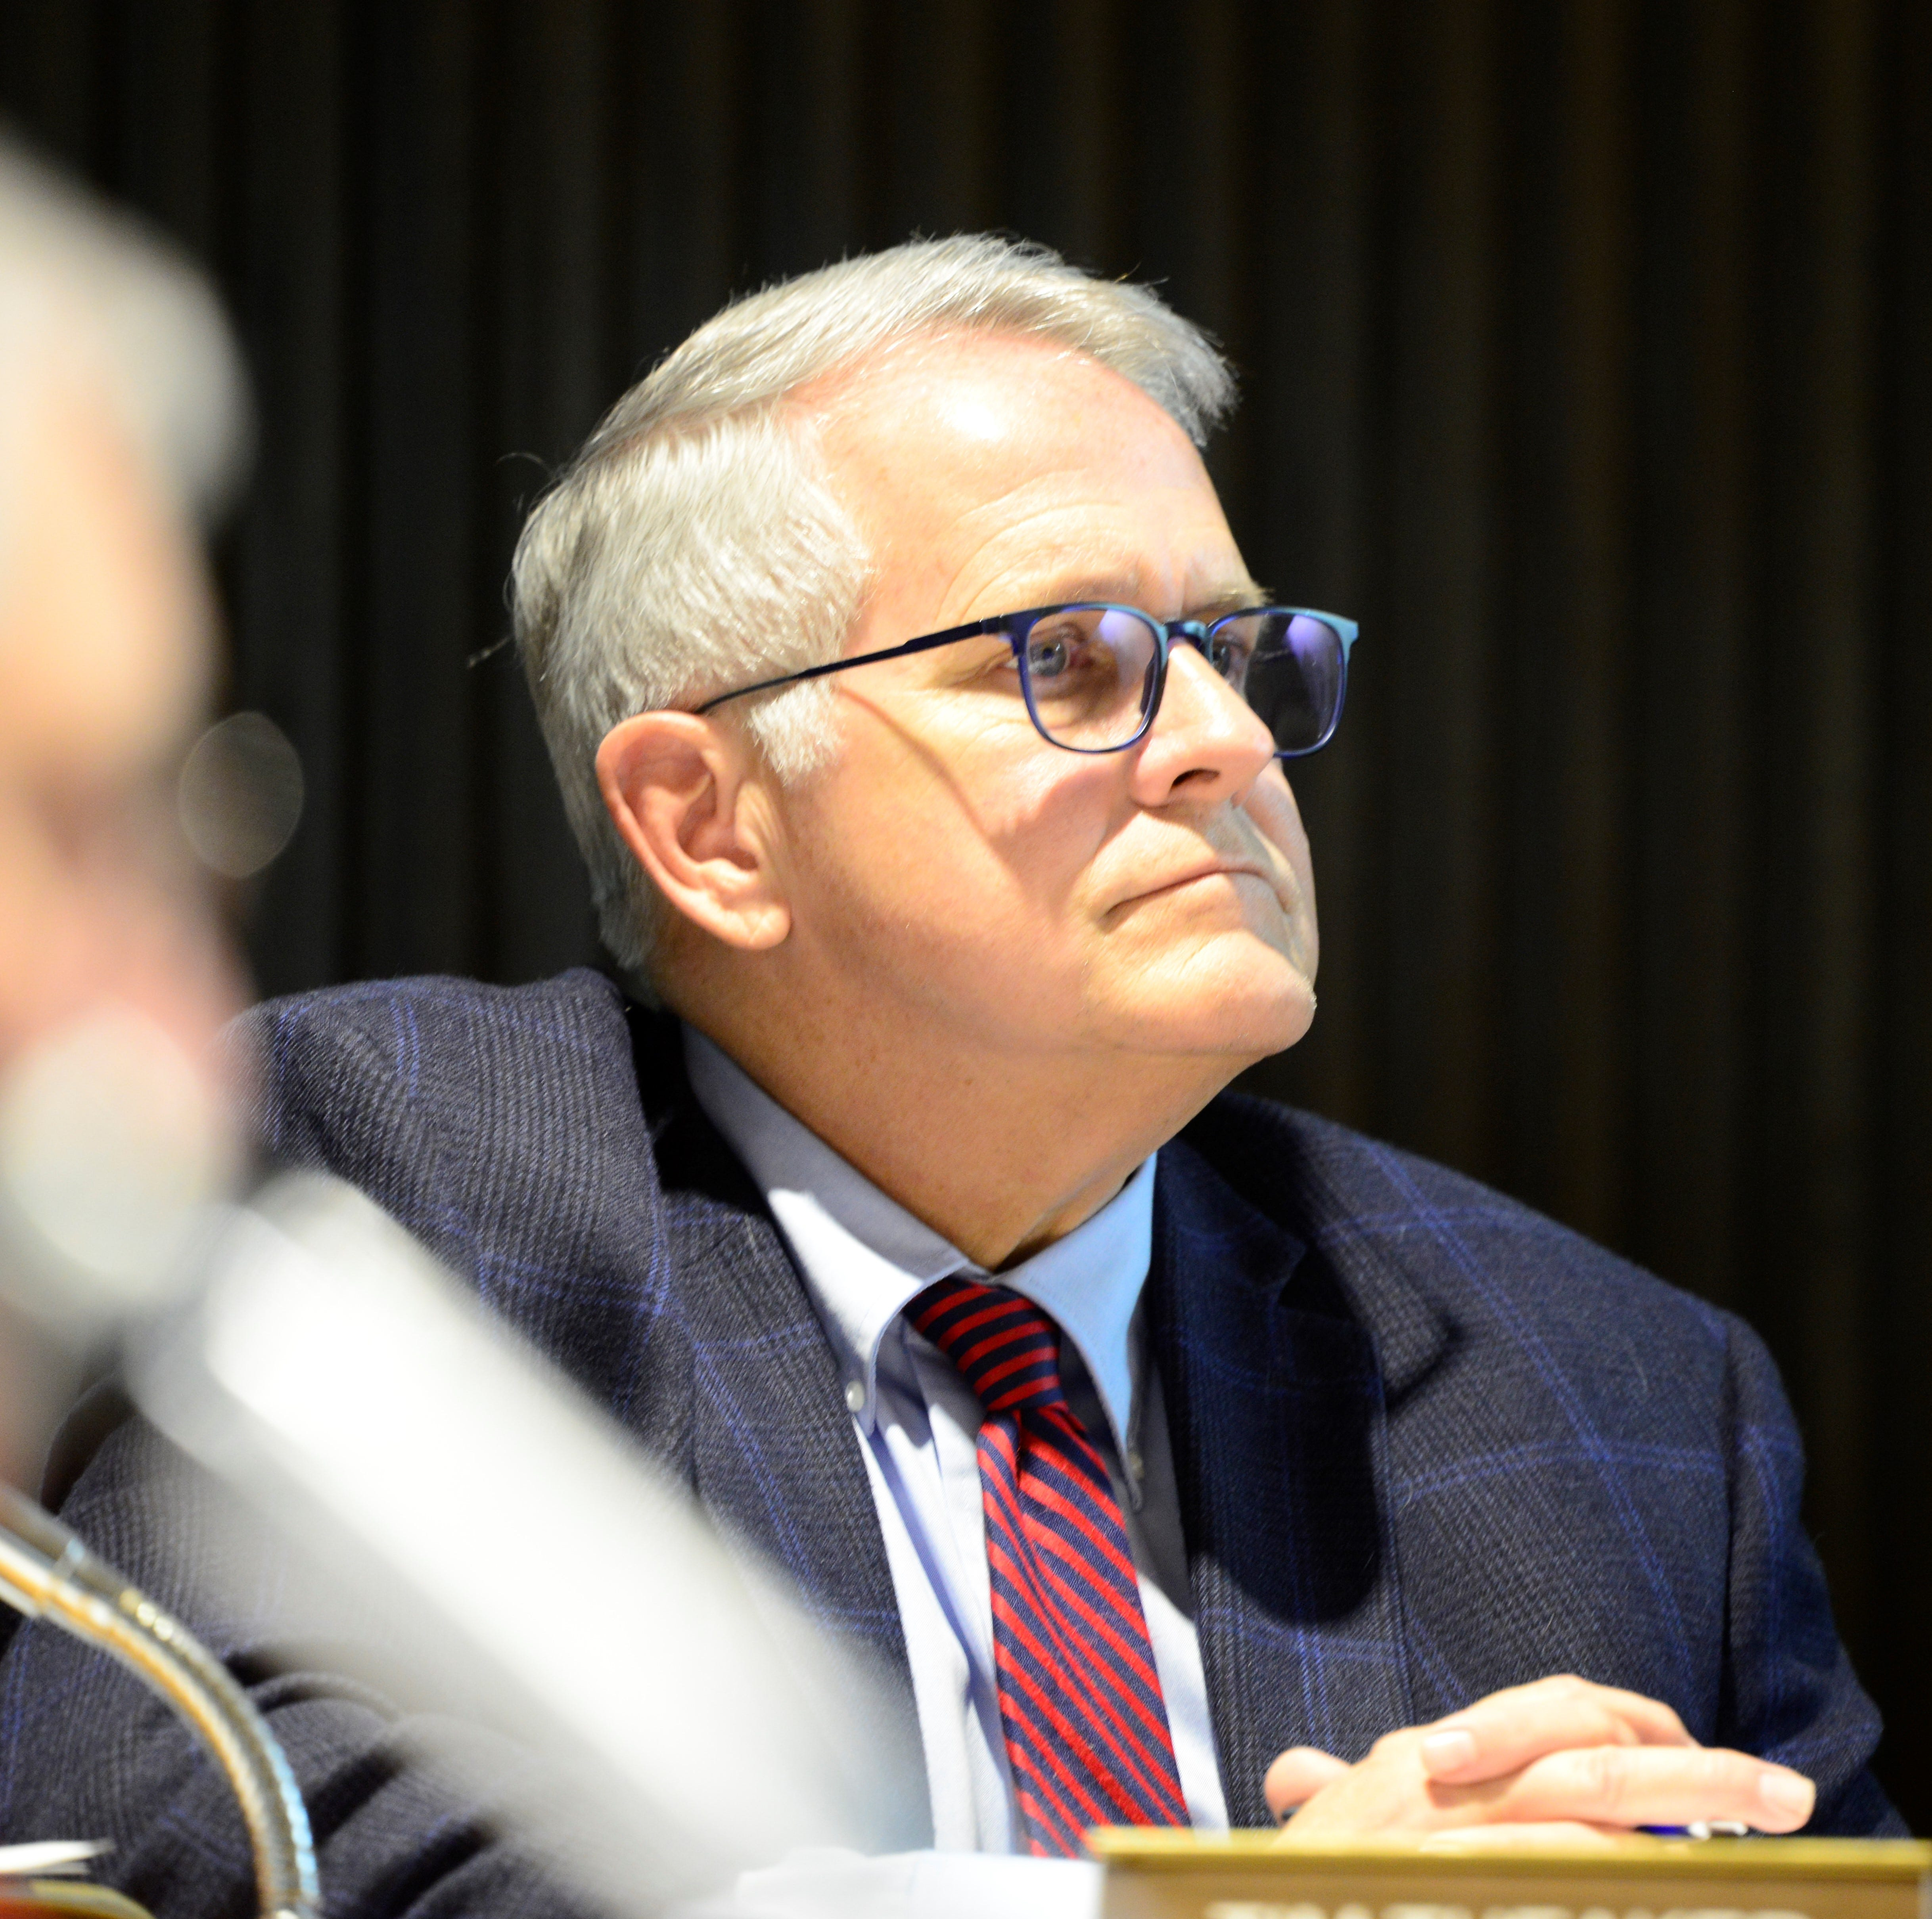 Mansfield mayor Tim Theaker says 'Mansfield is Rising' in annual state of the city address